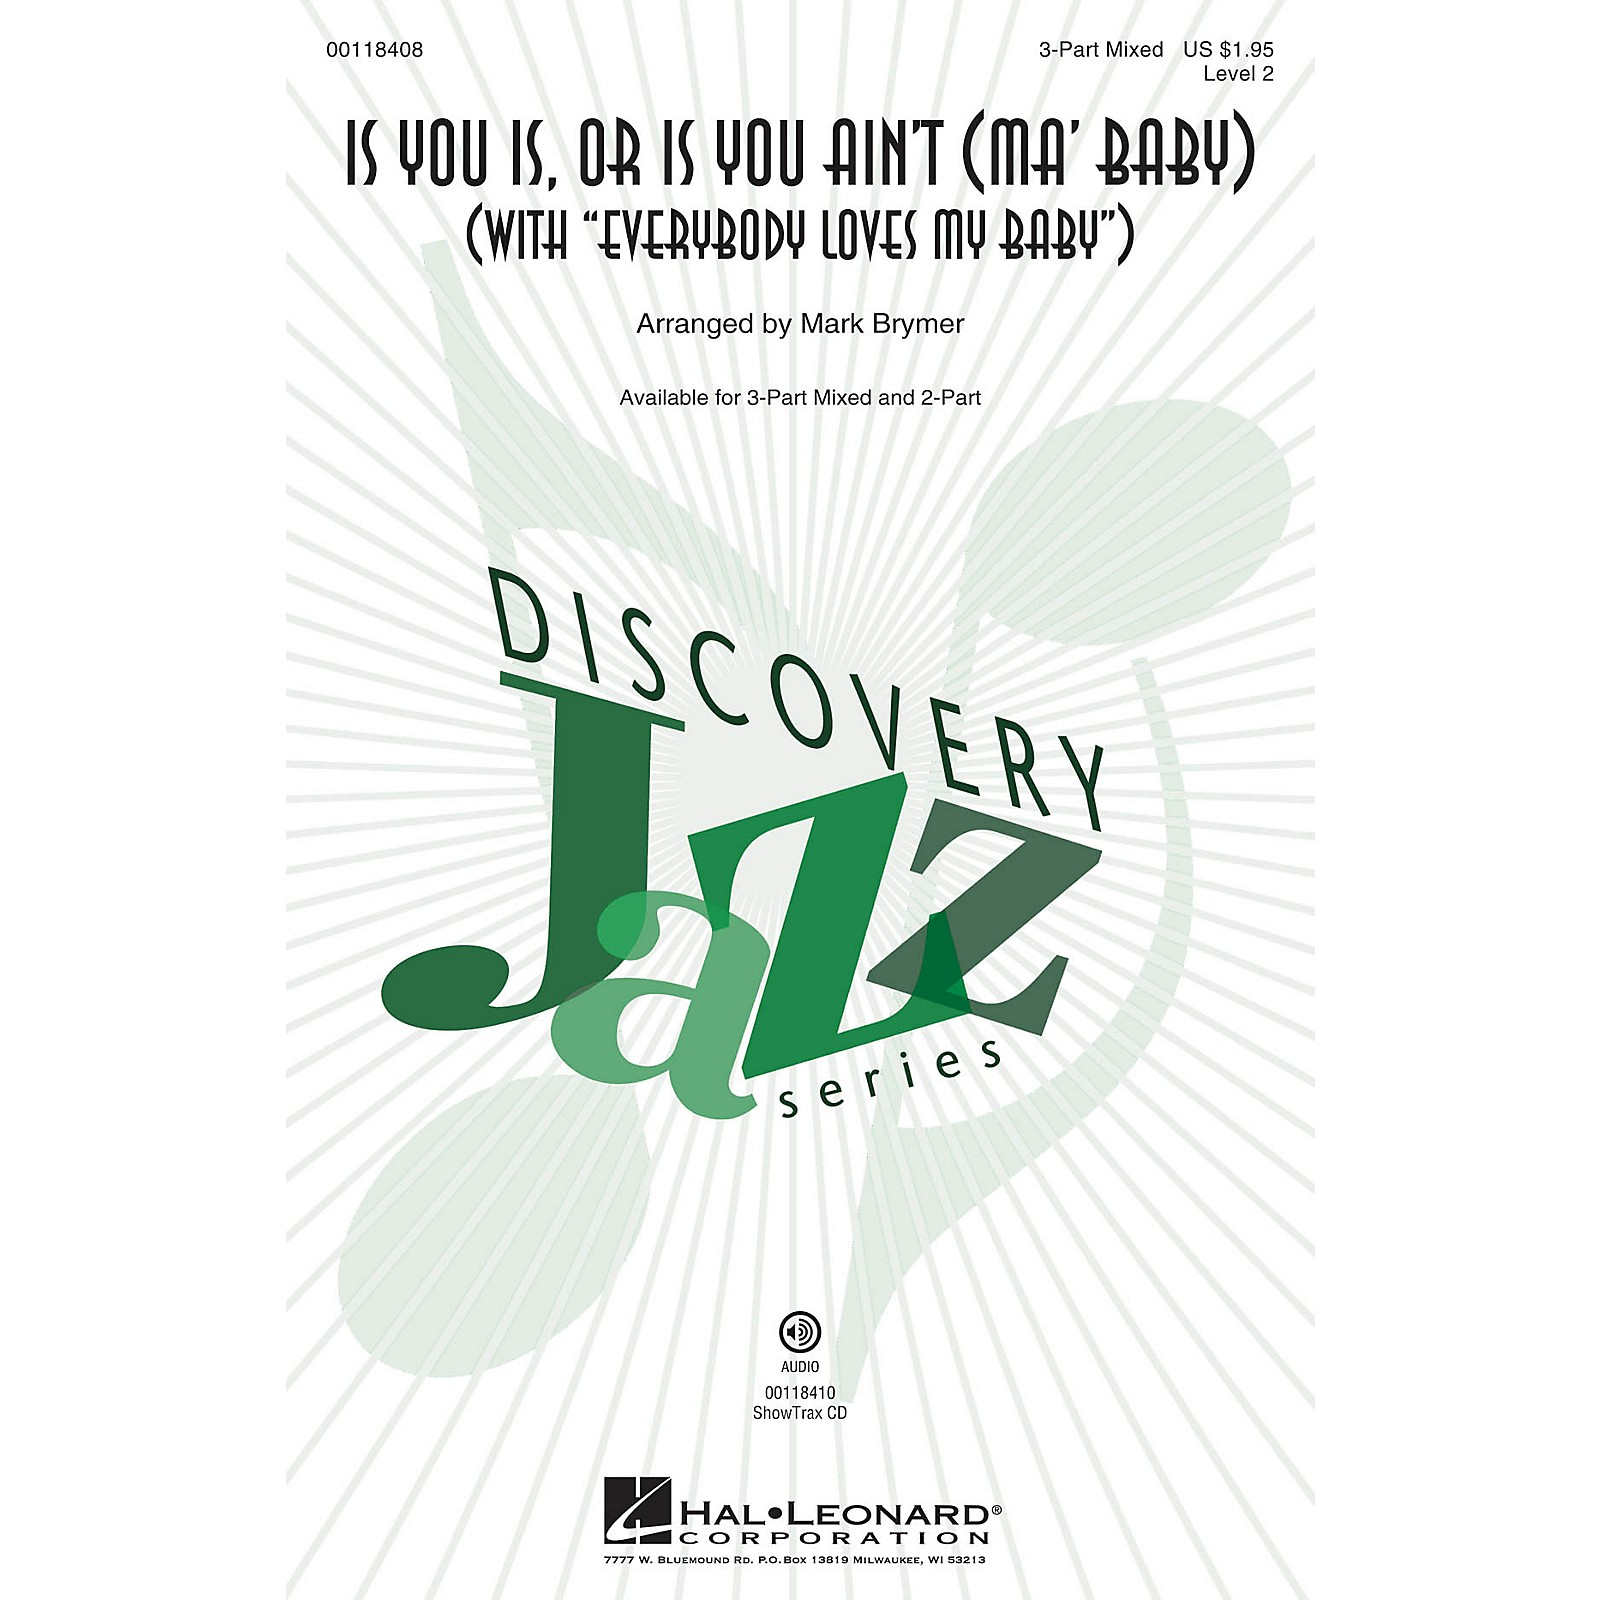 Hal Leonard Is You Is or Is You Ain't (Ma' Baby) (with Everybody Loves My Baby) 3-Part Mixed arranged by Mark Brymer